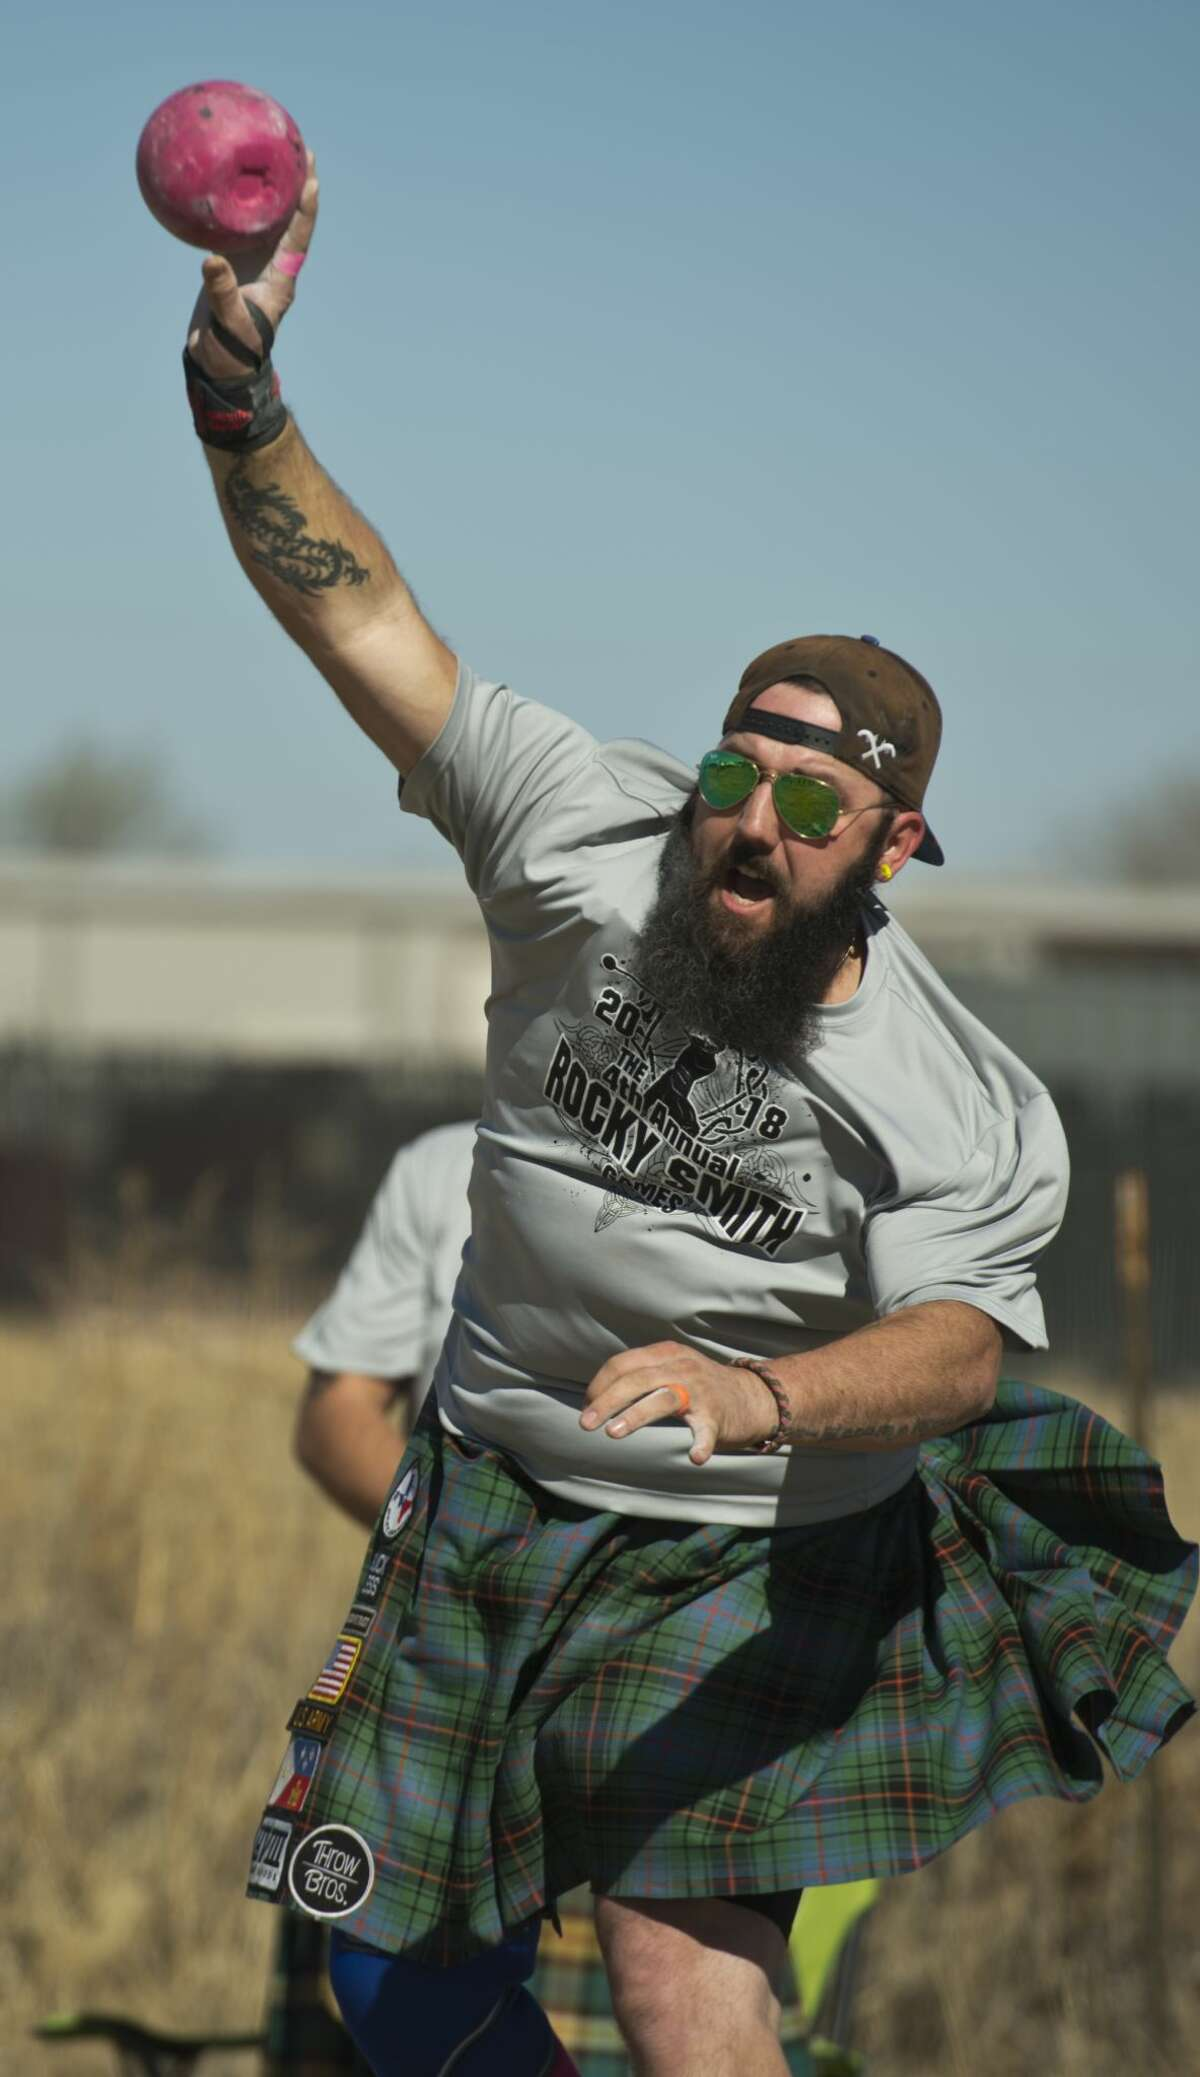 Royce Fontenot, from Yukon, Oklahoma, throws the braemar stone 03/10/18 during the 4th annual Rocky Smith Games, as part of the Highland Games during the Scottish Irish Faire at the Midland Horseshoe. Tim Fischer/Reporter-Telegram